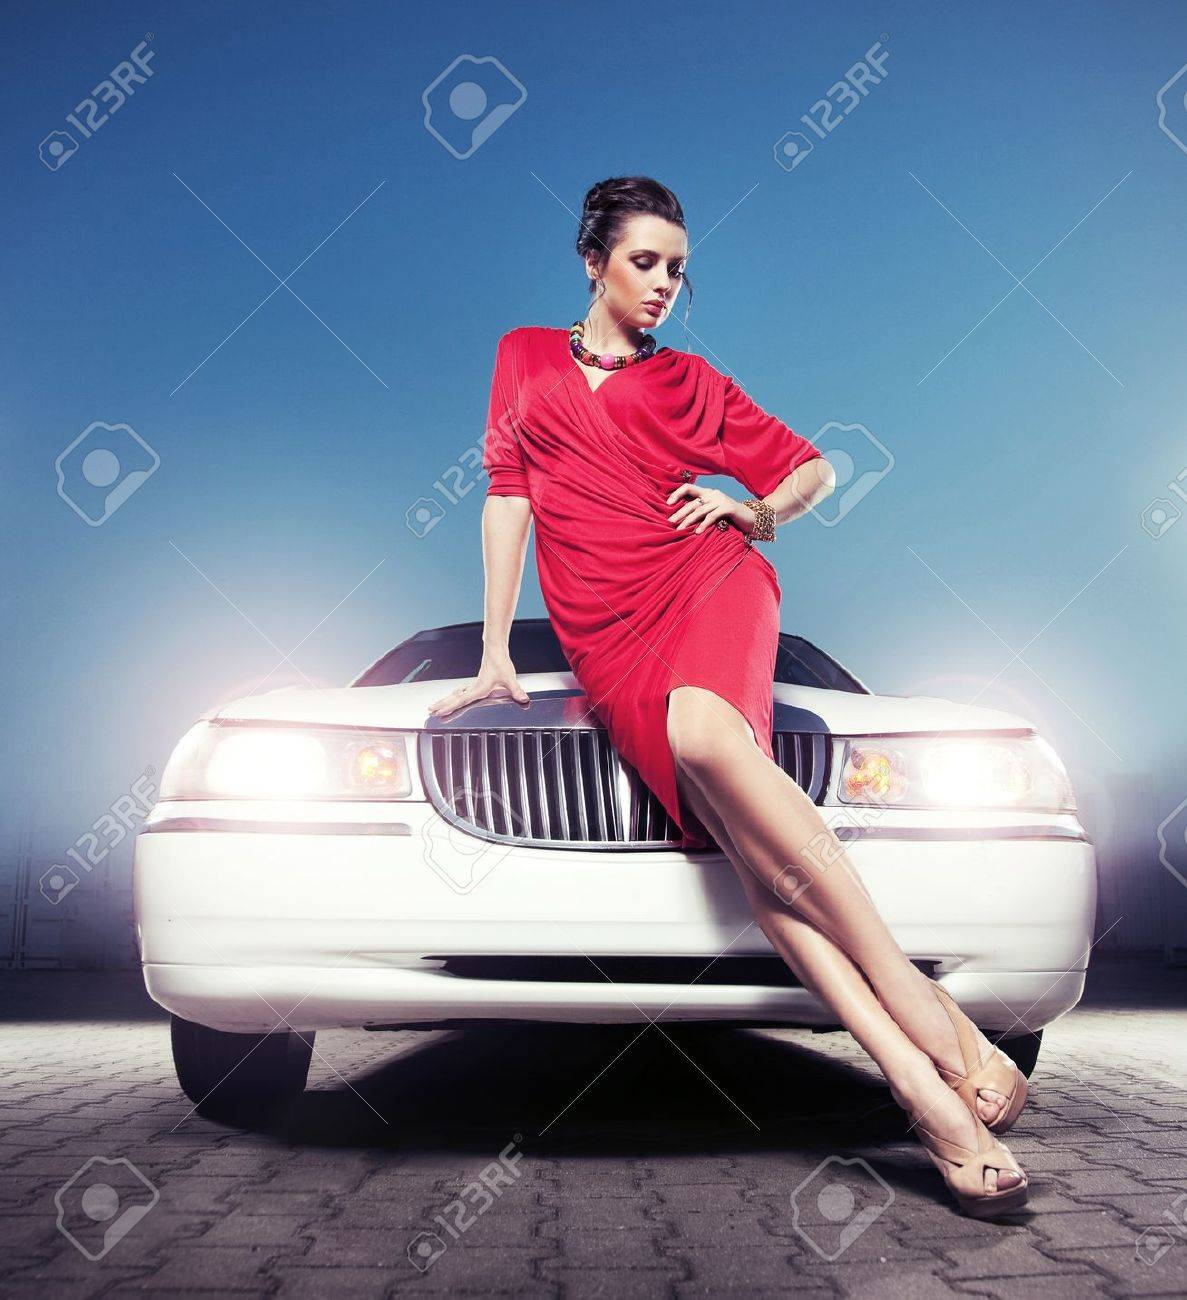 Sexy lady in front of a limousine Stock Photo - 9941738